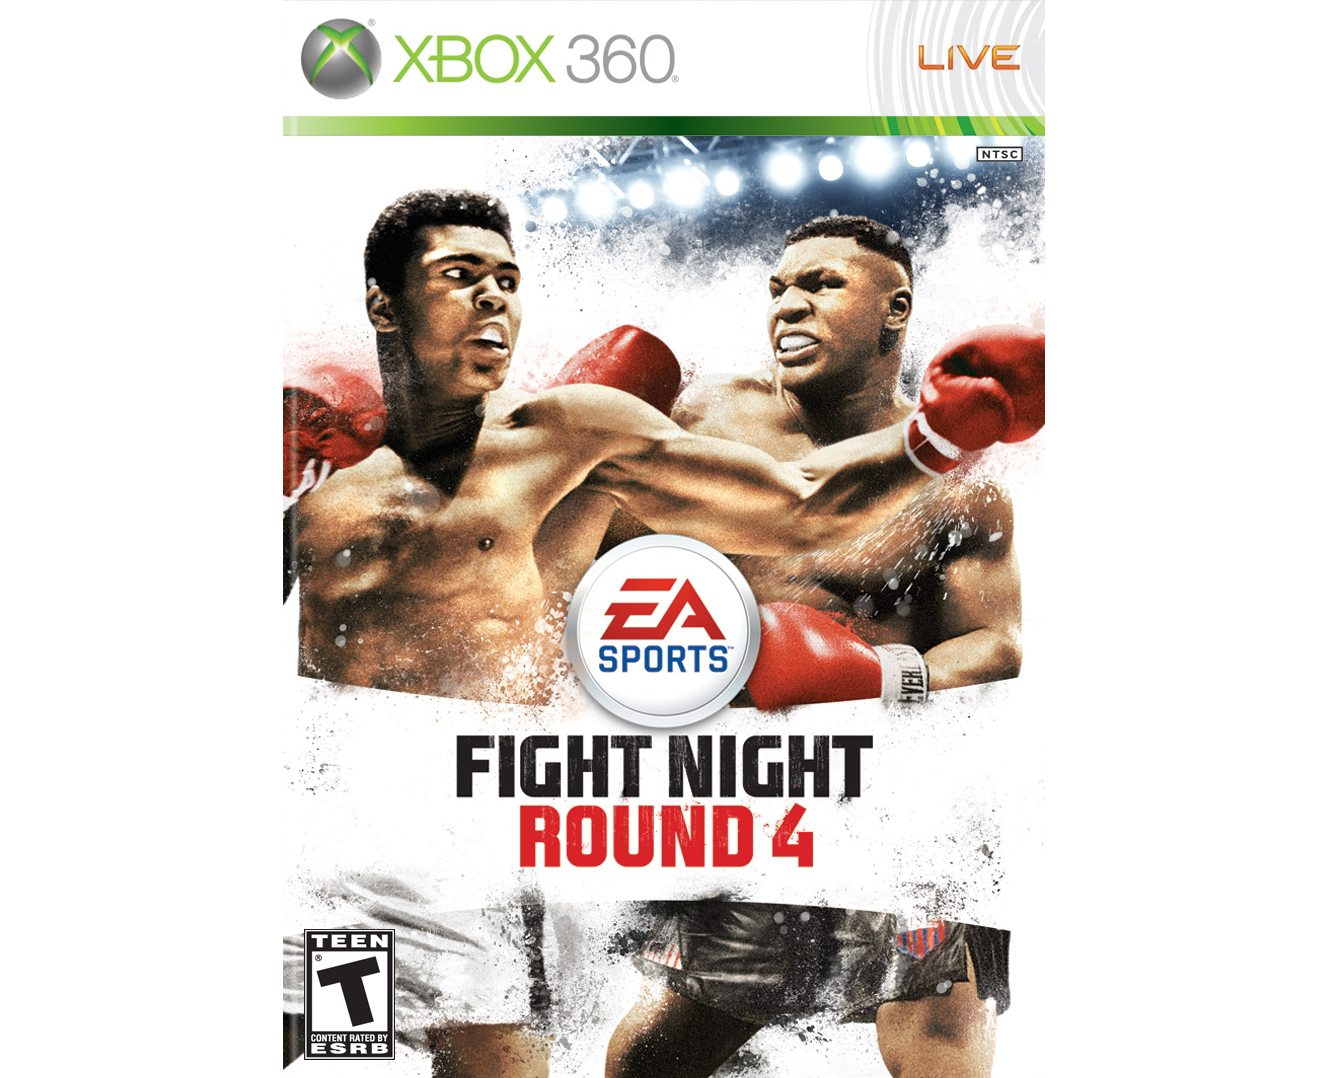 Xbox 360 Fight Night Round 4 Xbox 360